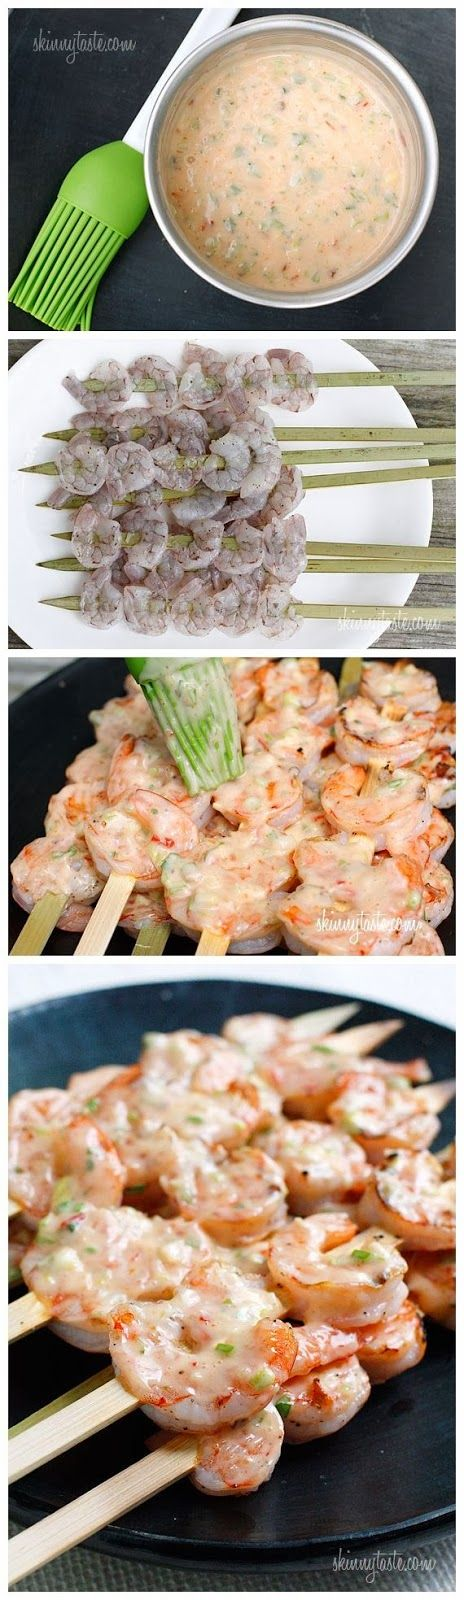 Bangin Grilled Shrimp Skewers, even the name makes it sound so good :) |skinnytaste.com Love this recipe